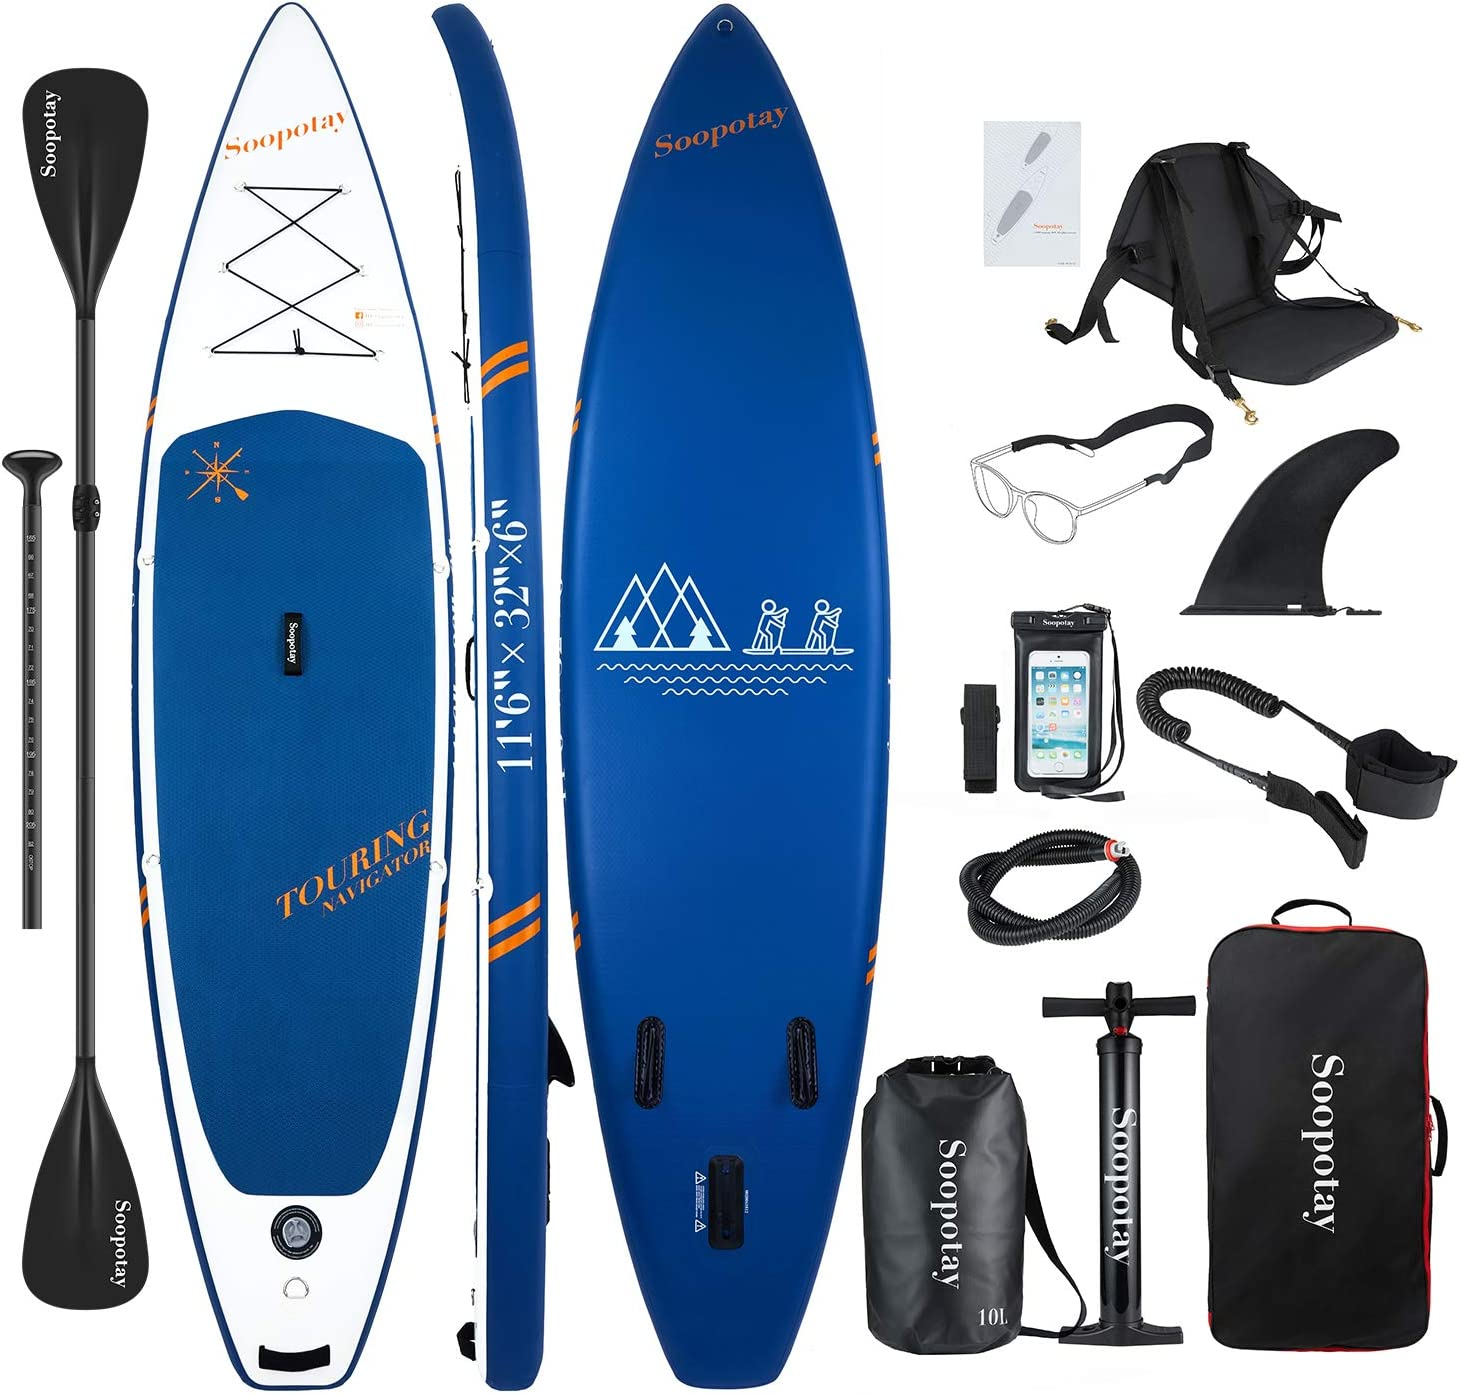 SOOPOTAY Inflatable SUP Stand Up Paddle Board, Inflatable SUP Board, iSUP Package with All Accessories Touring – Navy Blue-11 6 x 32 x 6